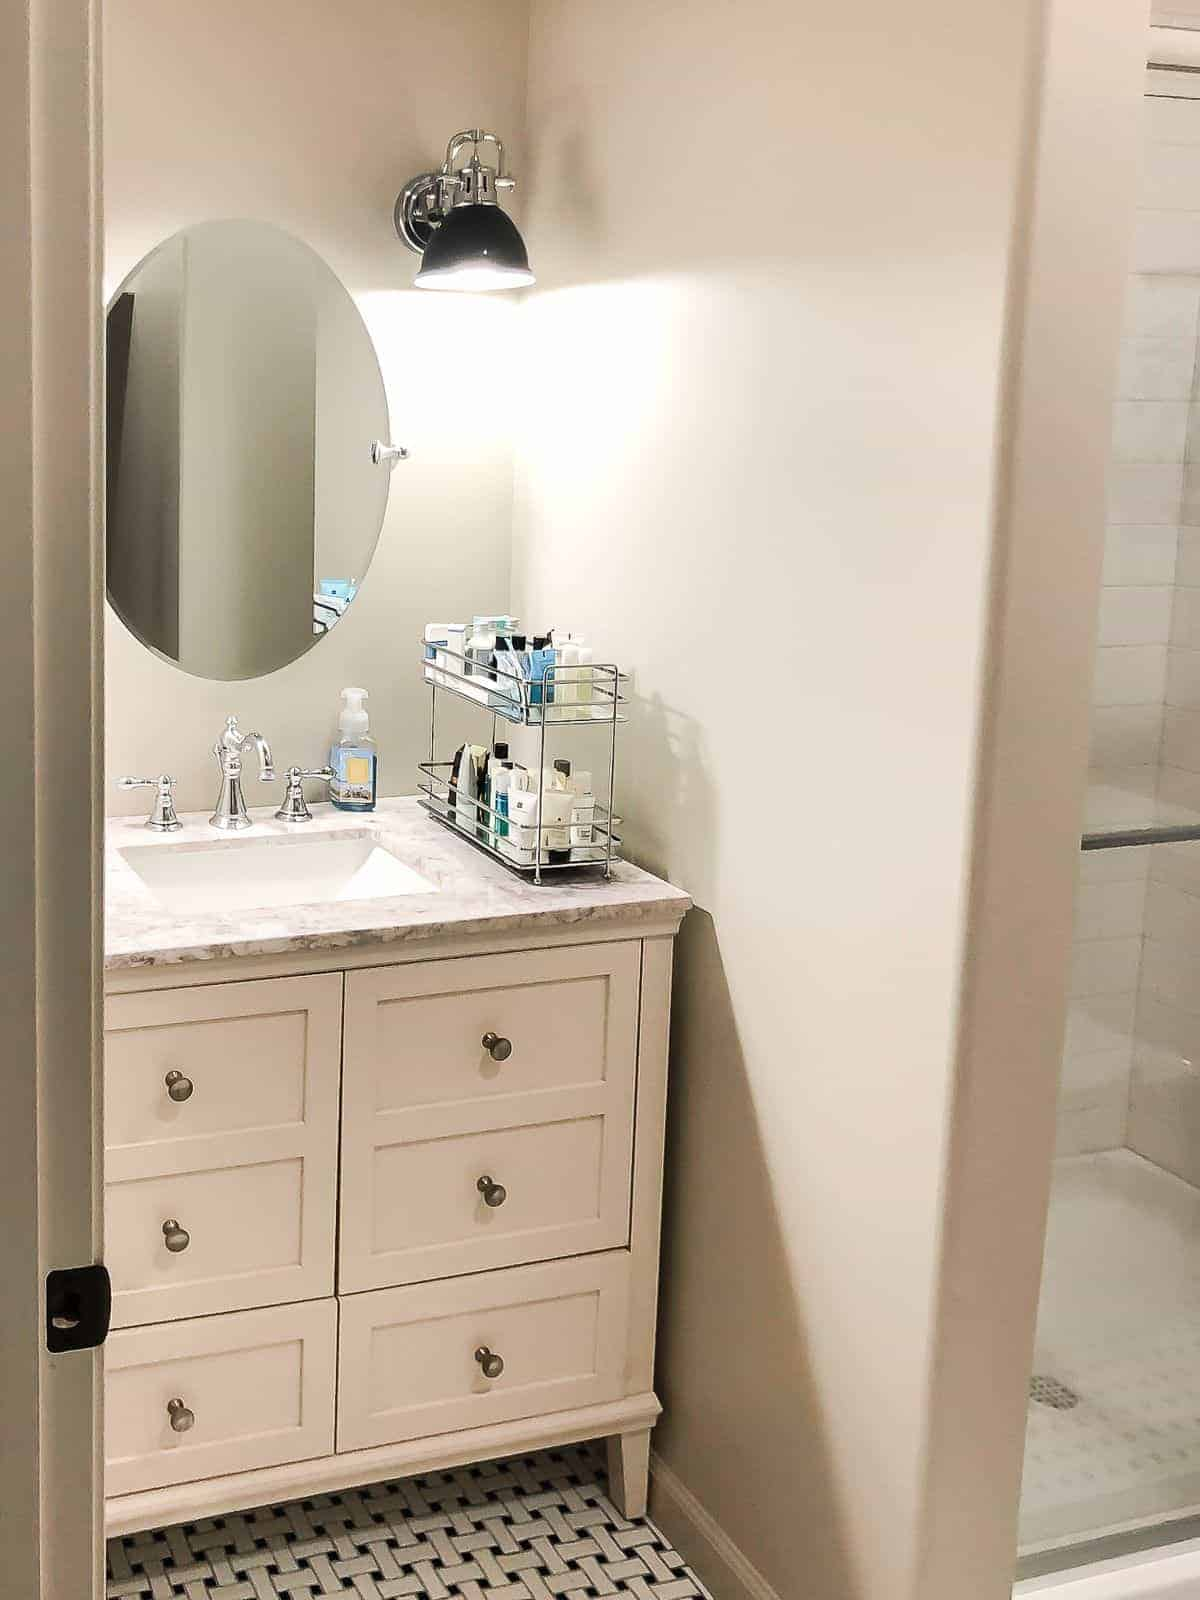 A small bathroom painted in sherwin williams accessible beige, with a cream vanity and oval mirror.